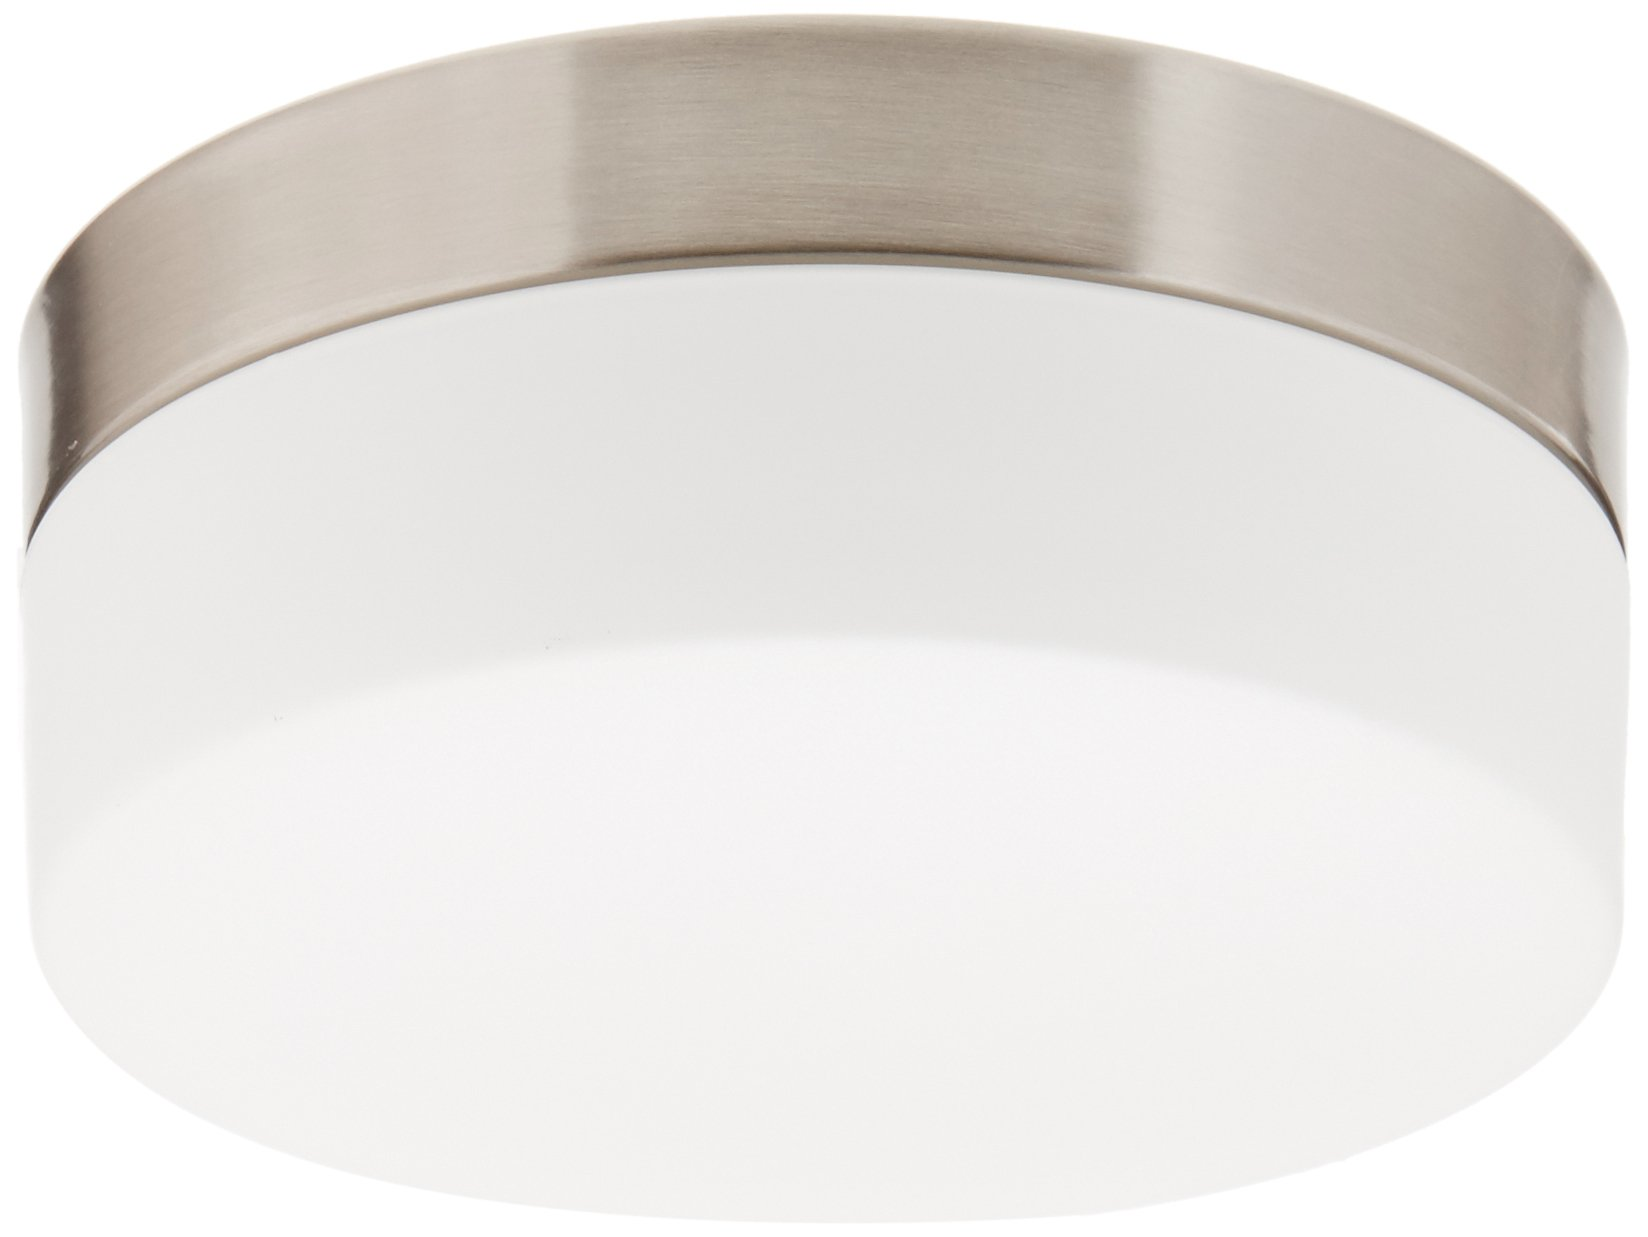 Galaxy Lighting 612312BN Flush Mount Ceiling Light by Galaxy Lighting